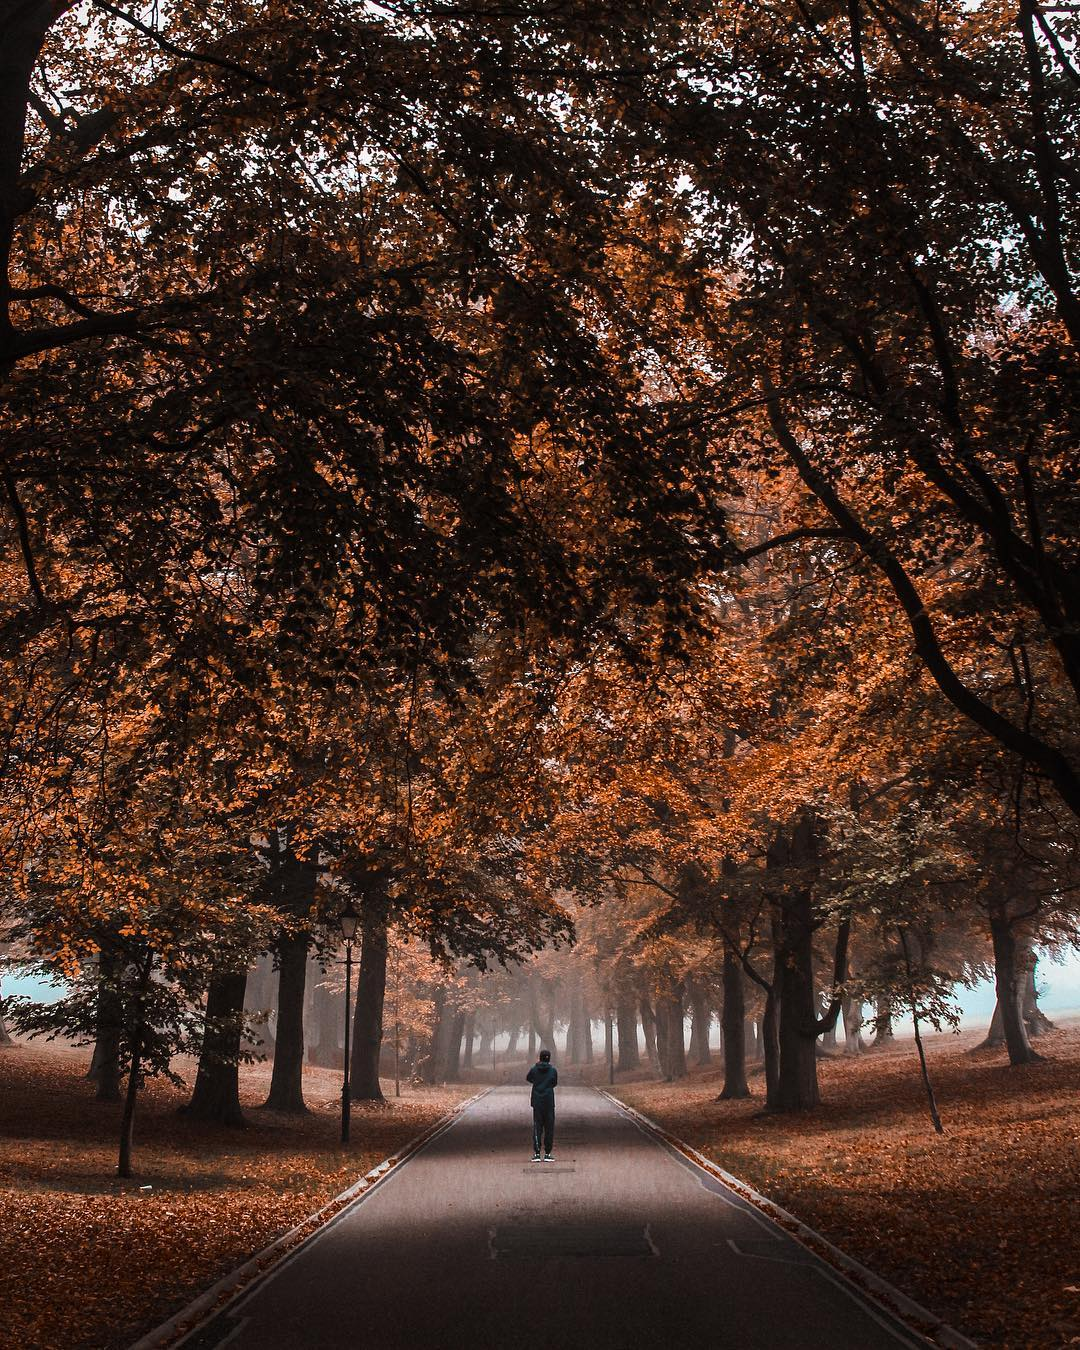 London in the autumn photos, Harpenden